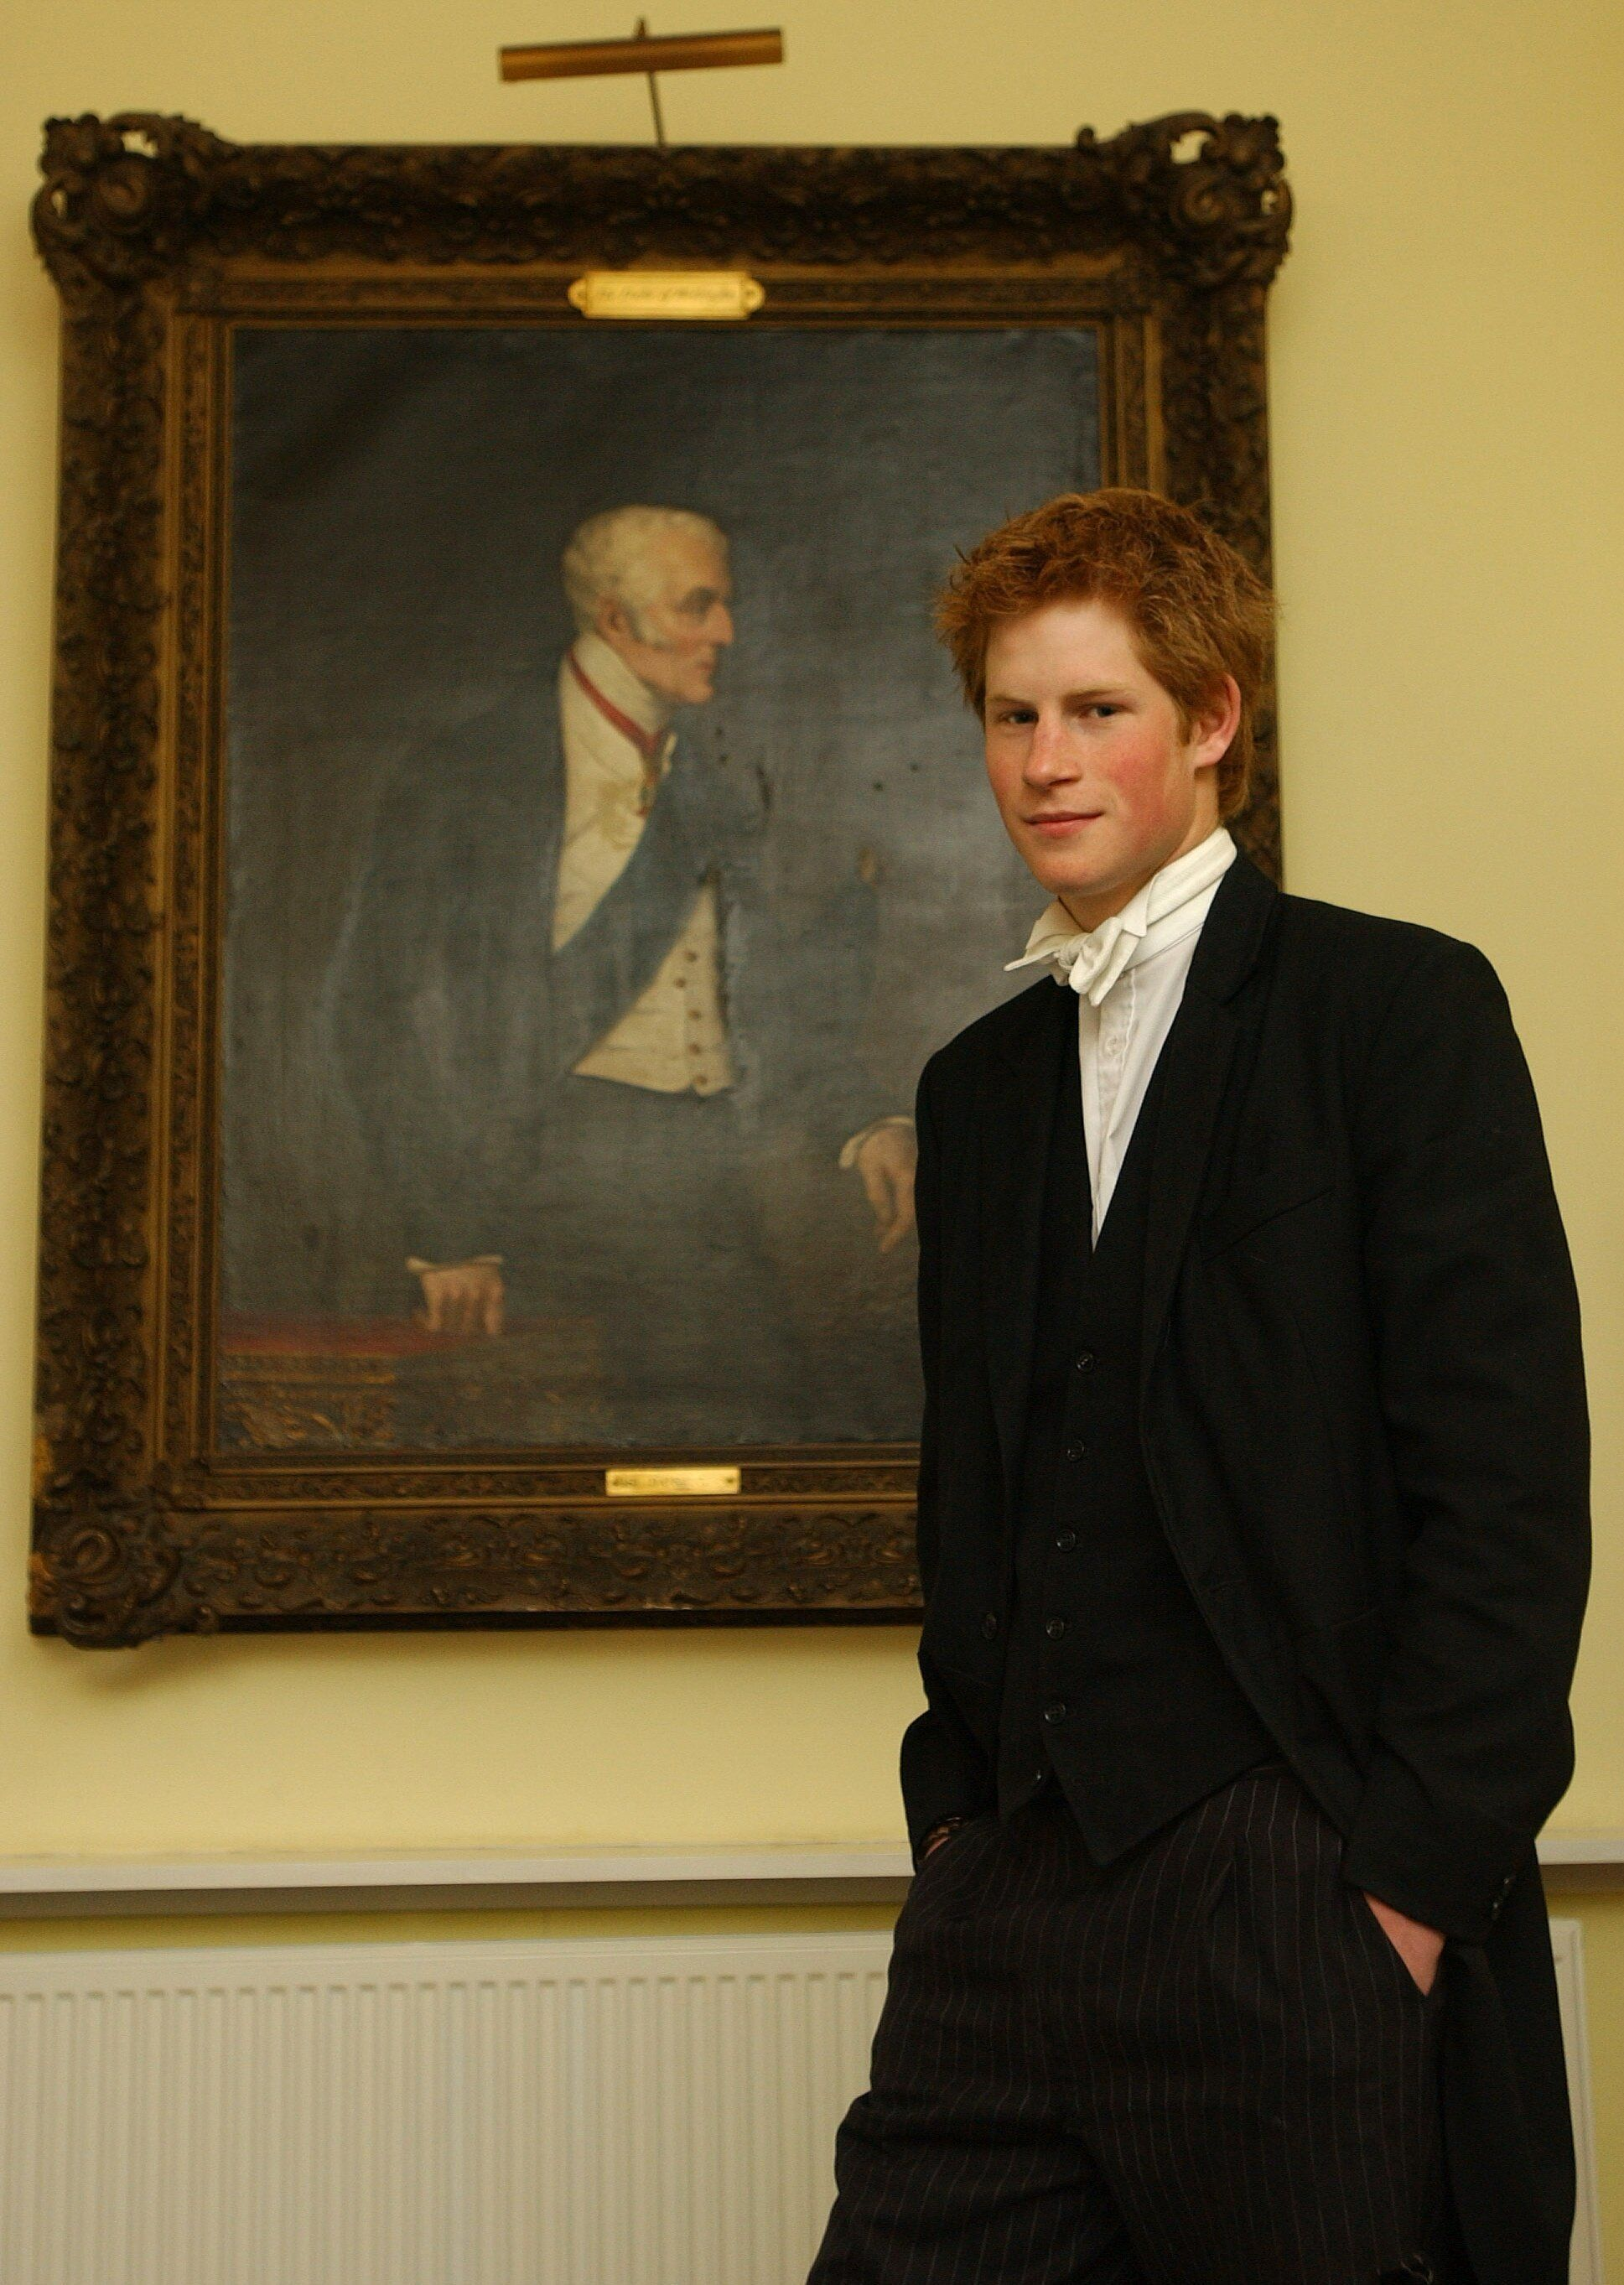 Prince Harry, wearing a school uniform, poses by a portrait of the Duke of Wellington at the Manor House, Eton College, on Ma